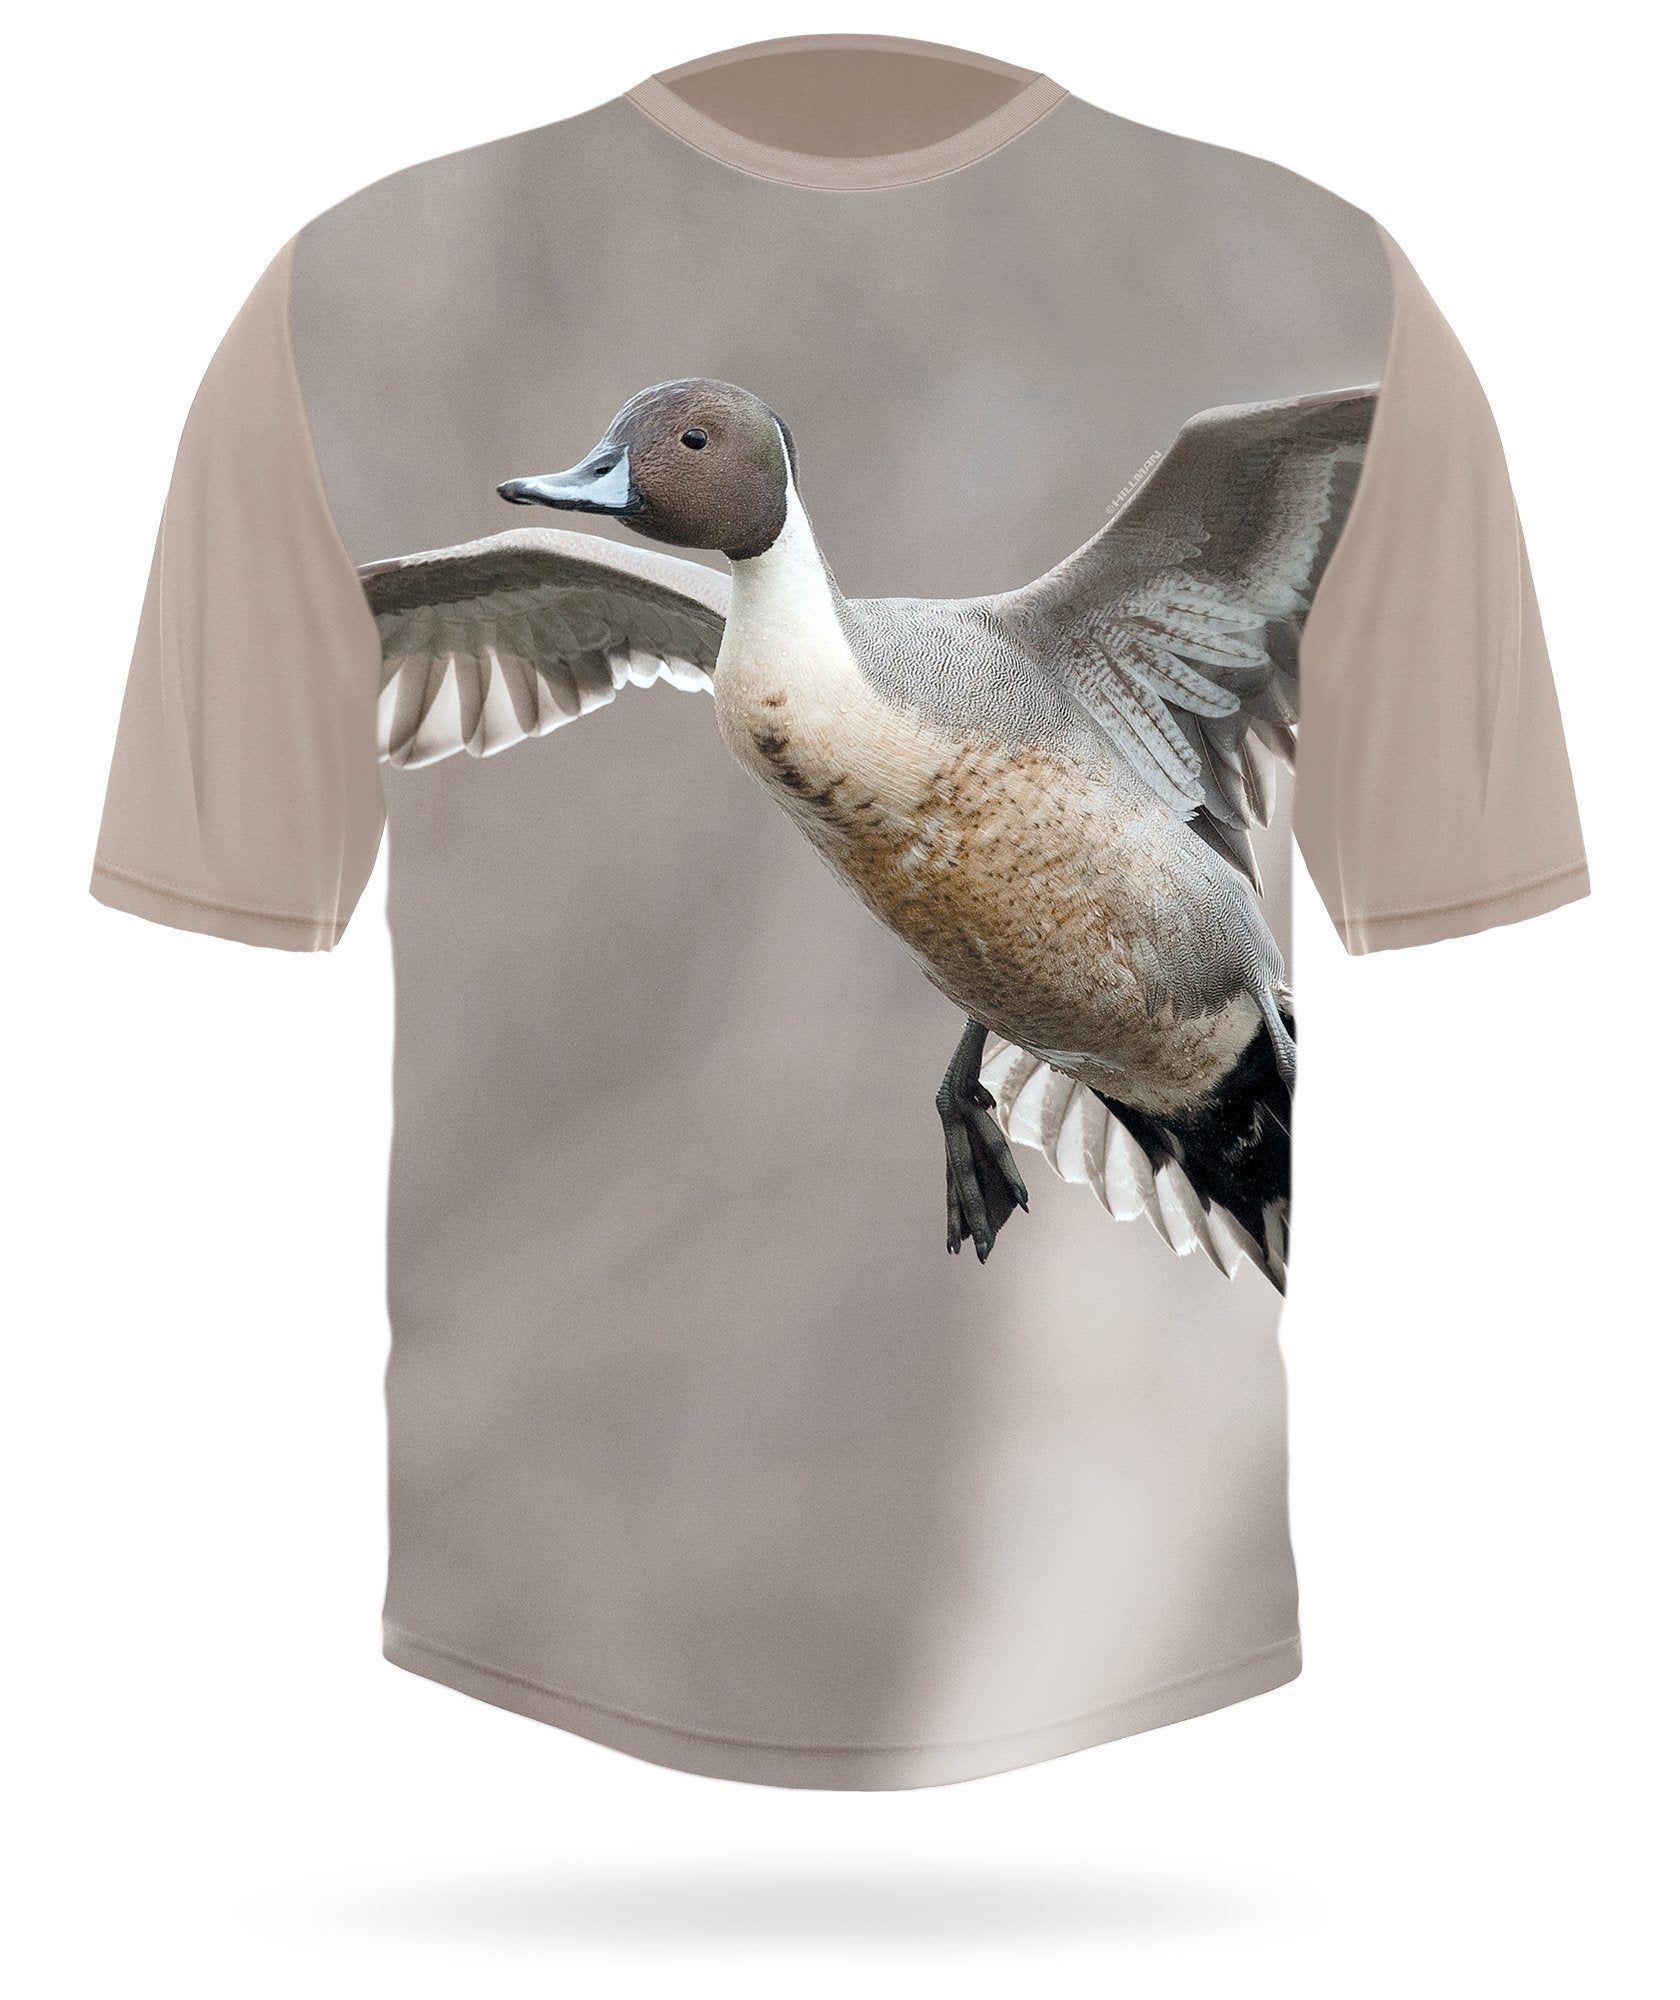 Northern Pintail T-Shirt - Short Sleeve